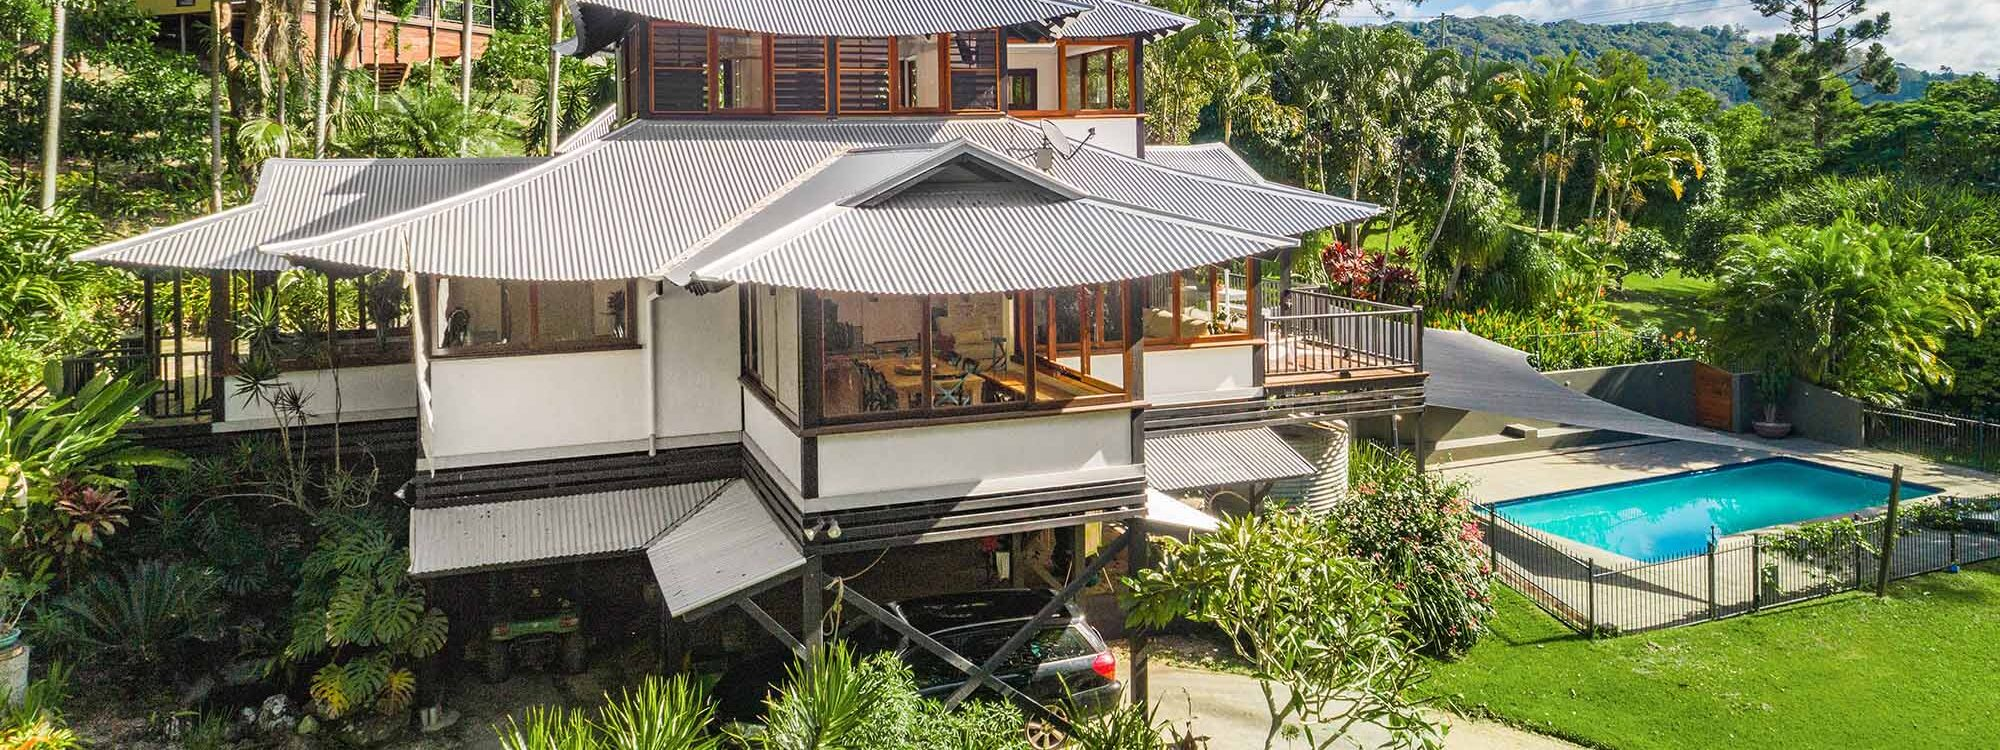 Ourmuli House - Byron Bay - Aerial Image - Front of House and Cabin b